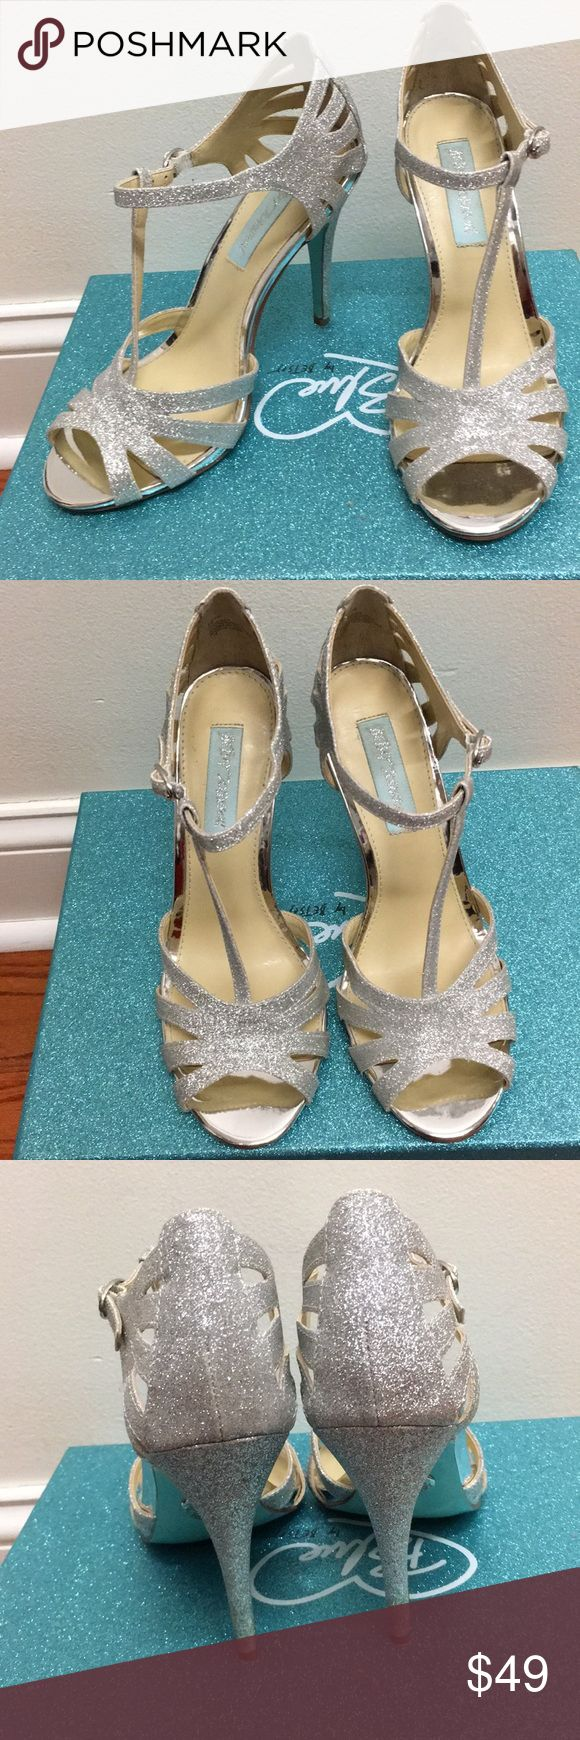 Betsey Johnson Silver Glitter Heels Betsey Johnson silver heels. Worn only once to a prom. Heel measures 4 inches. Have box and they are in excellent condition with minimal wear on the bottom and heel- please see attached pictures.  Size 6.5 Betsey Johnson Shoes Heels #GlitterHeels